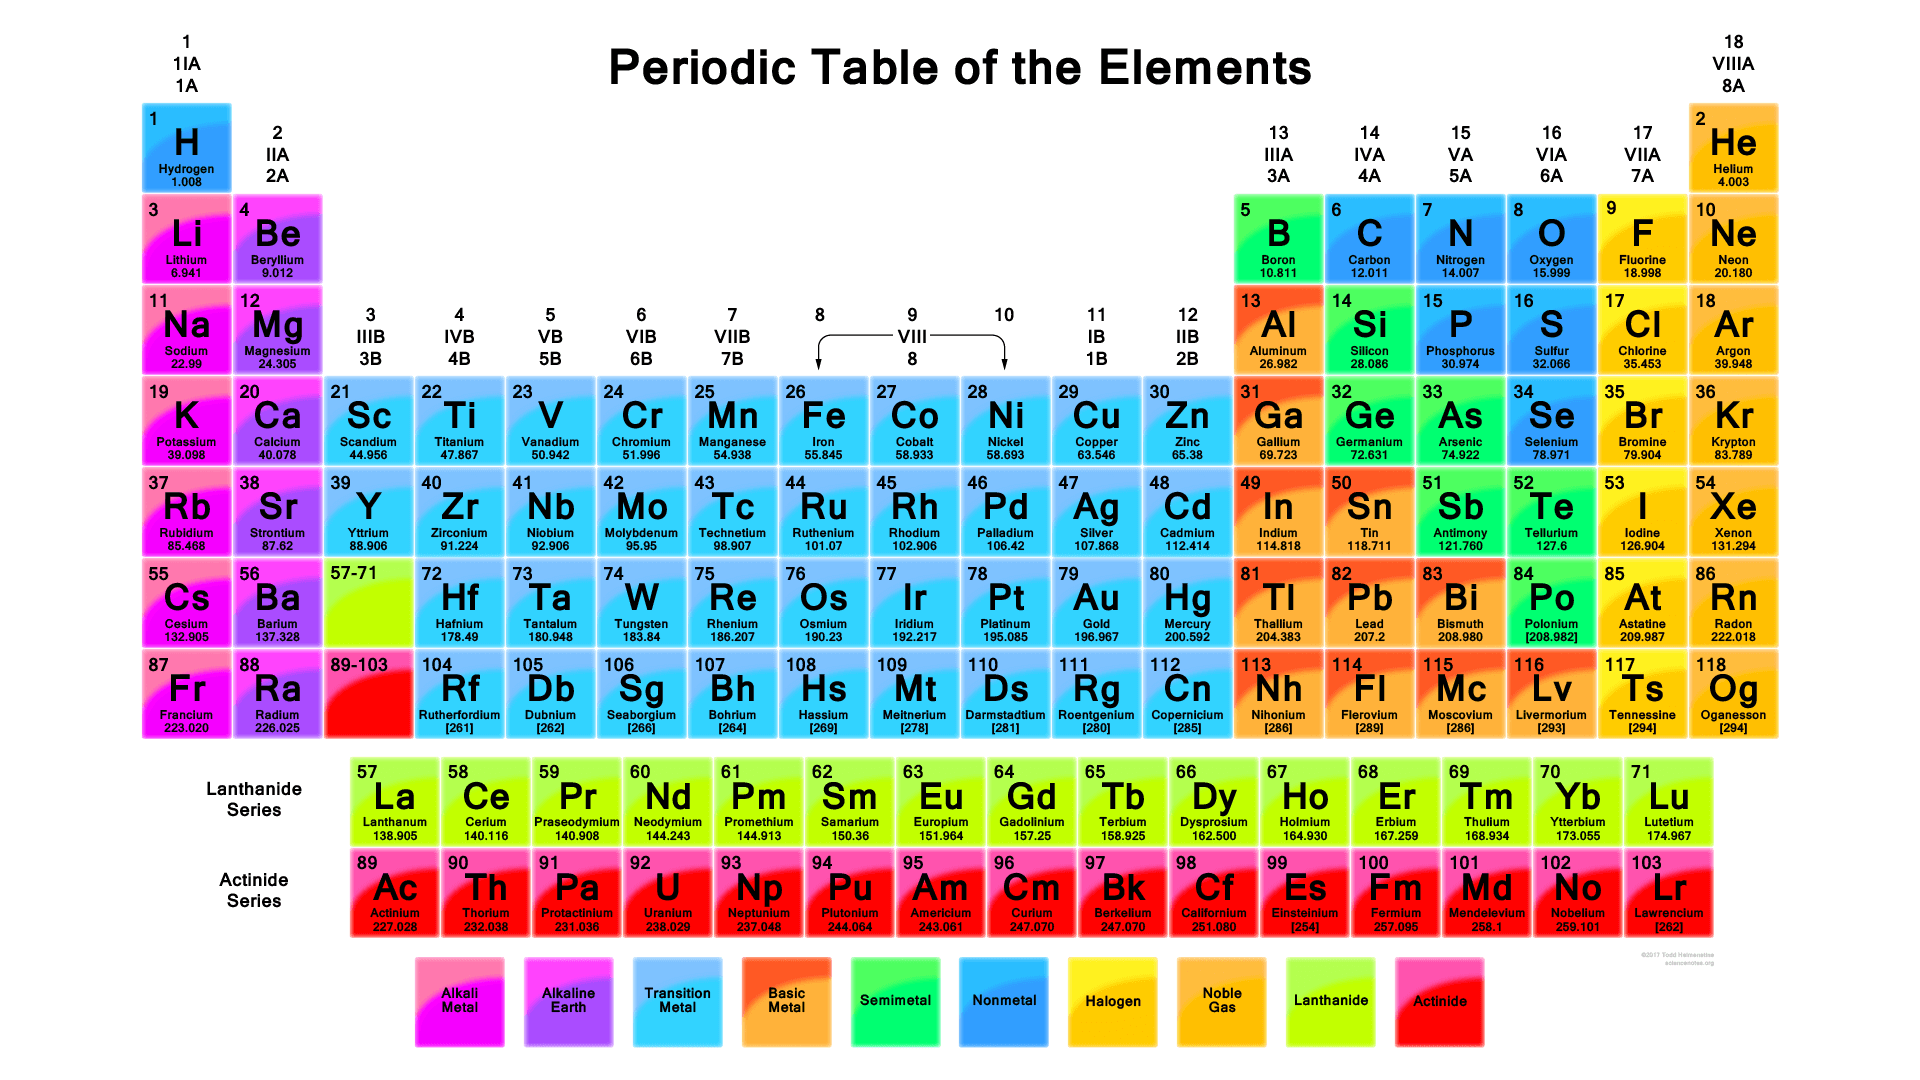 Periodic table pdf 2018 edition with 118 elements vibrant periodic table with 118 elements urtaz Image collections